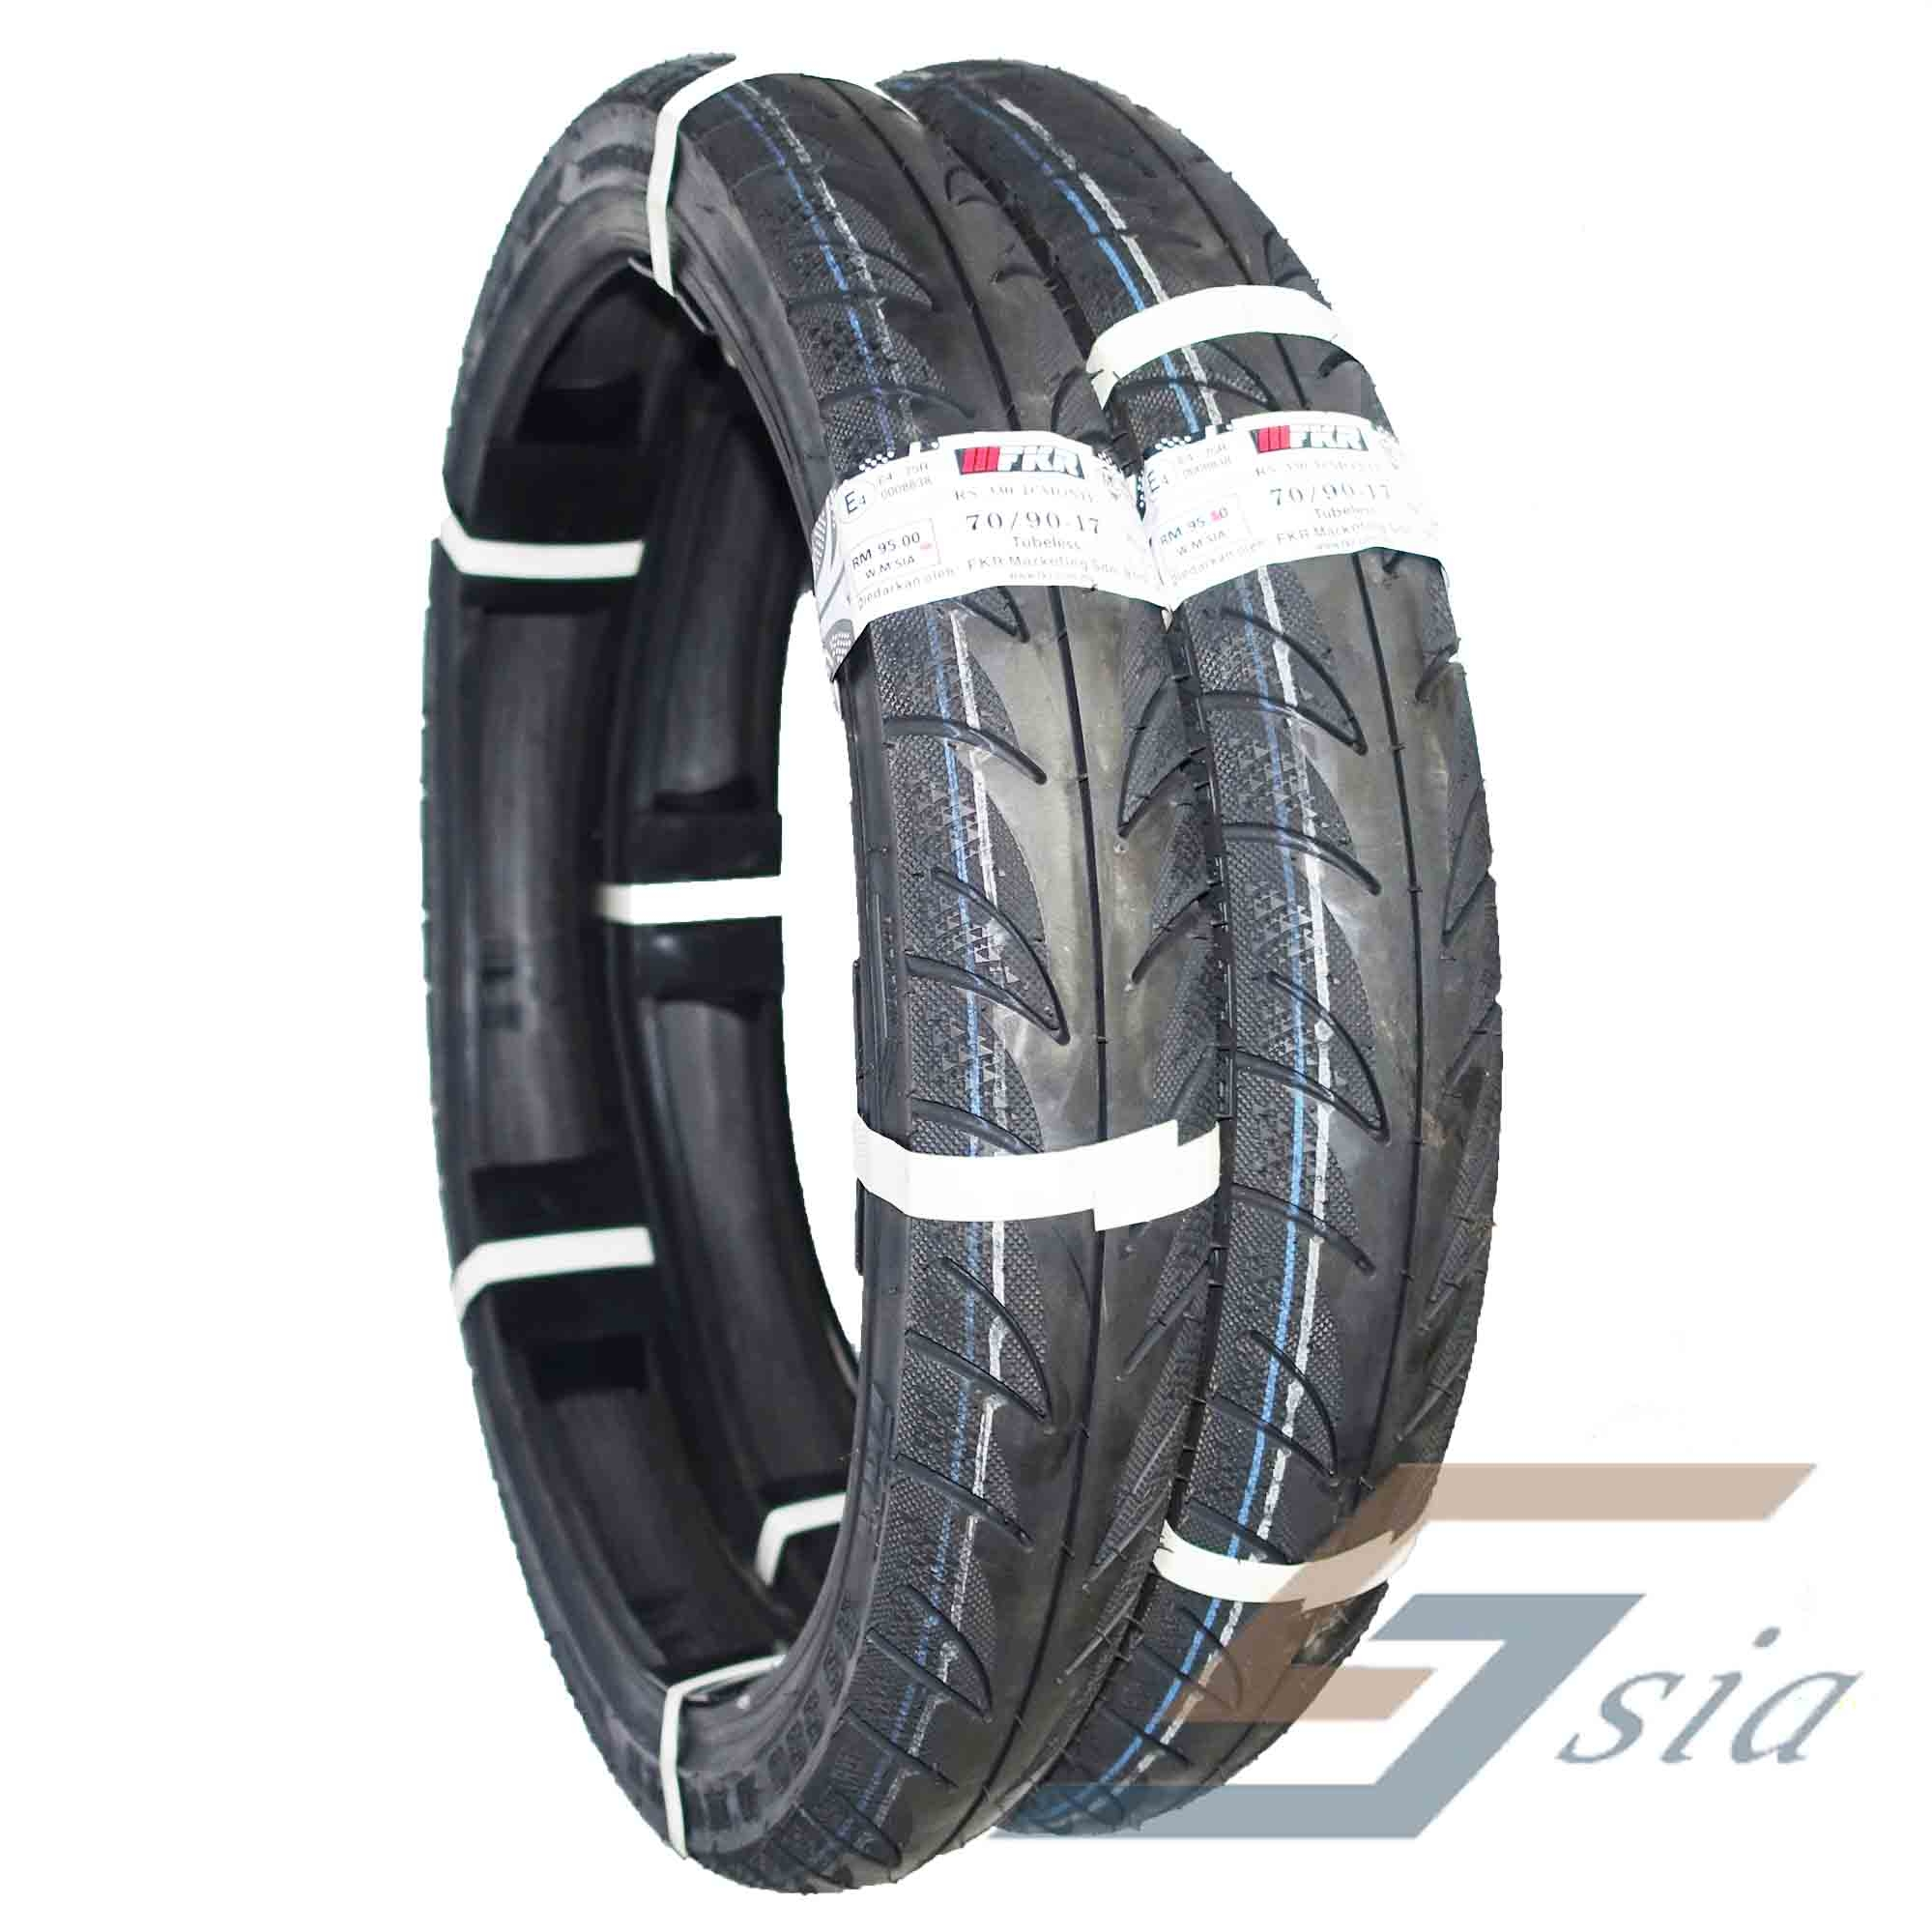 FKR RS330 D''MONTE 70/90-17 Tubesless Tyre Motorcycle (2 pcs)